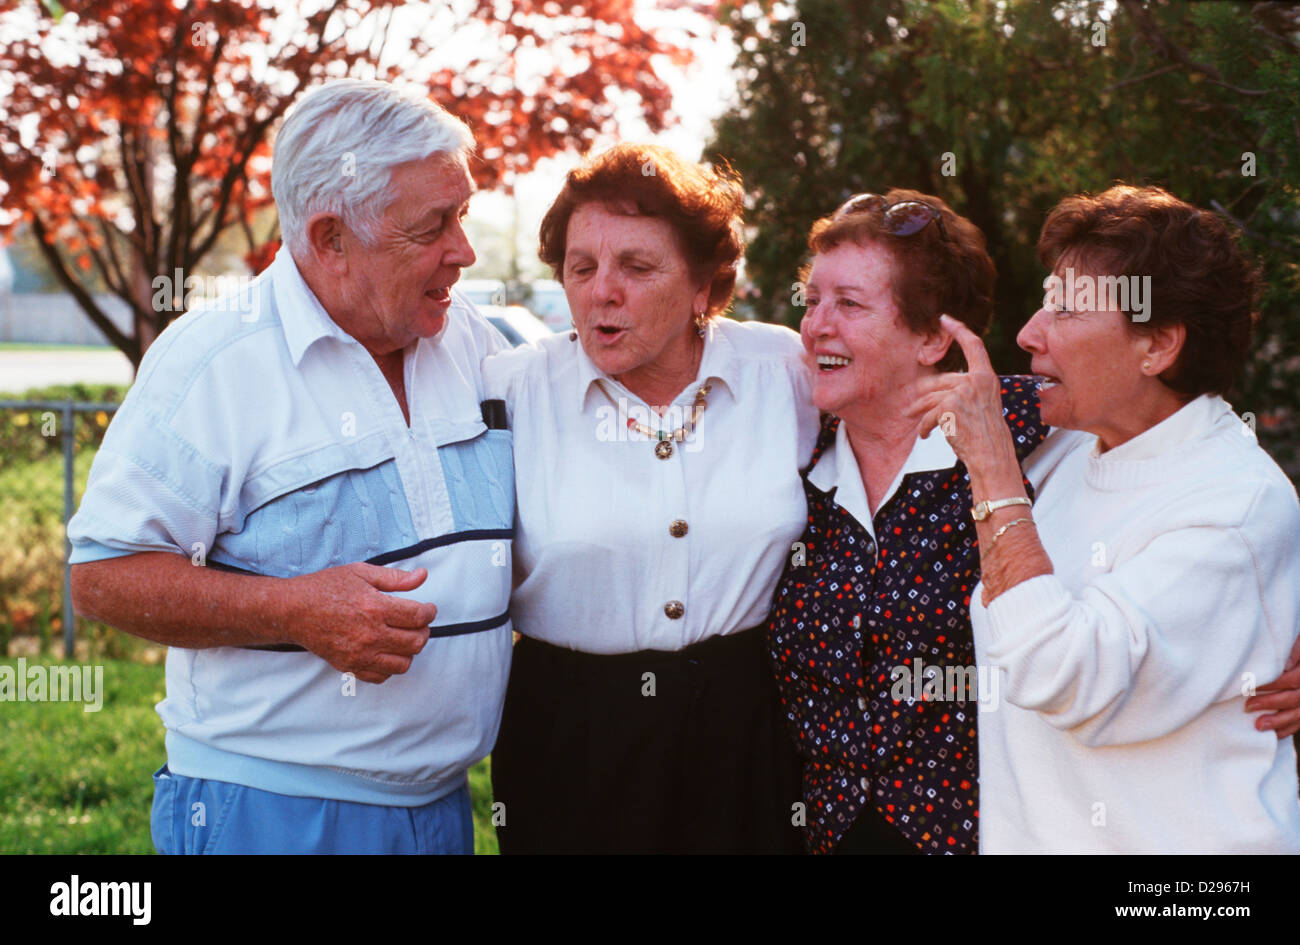 Seniors: A Man And 3 Women, All In Their 70S - Stock Image